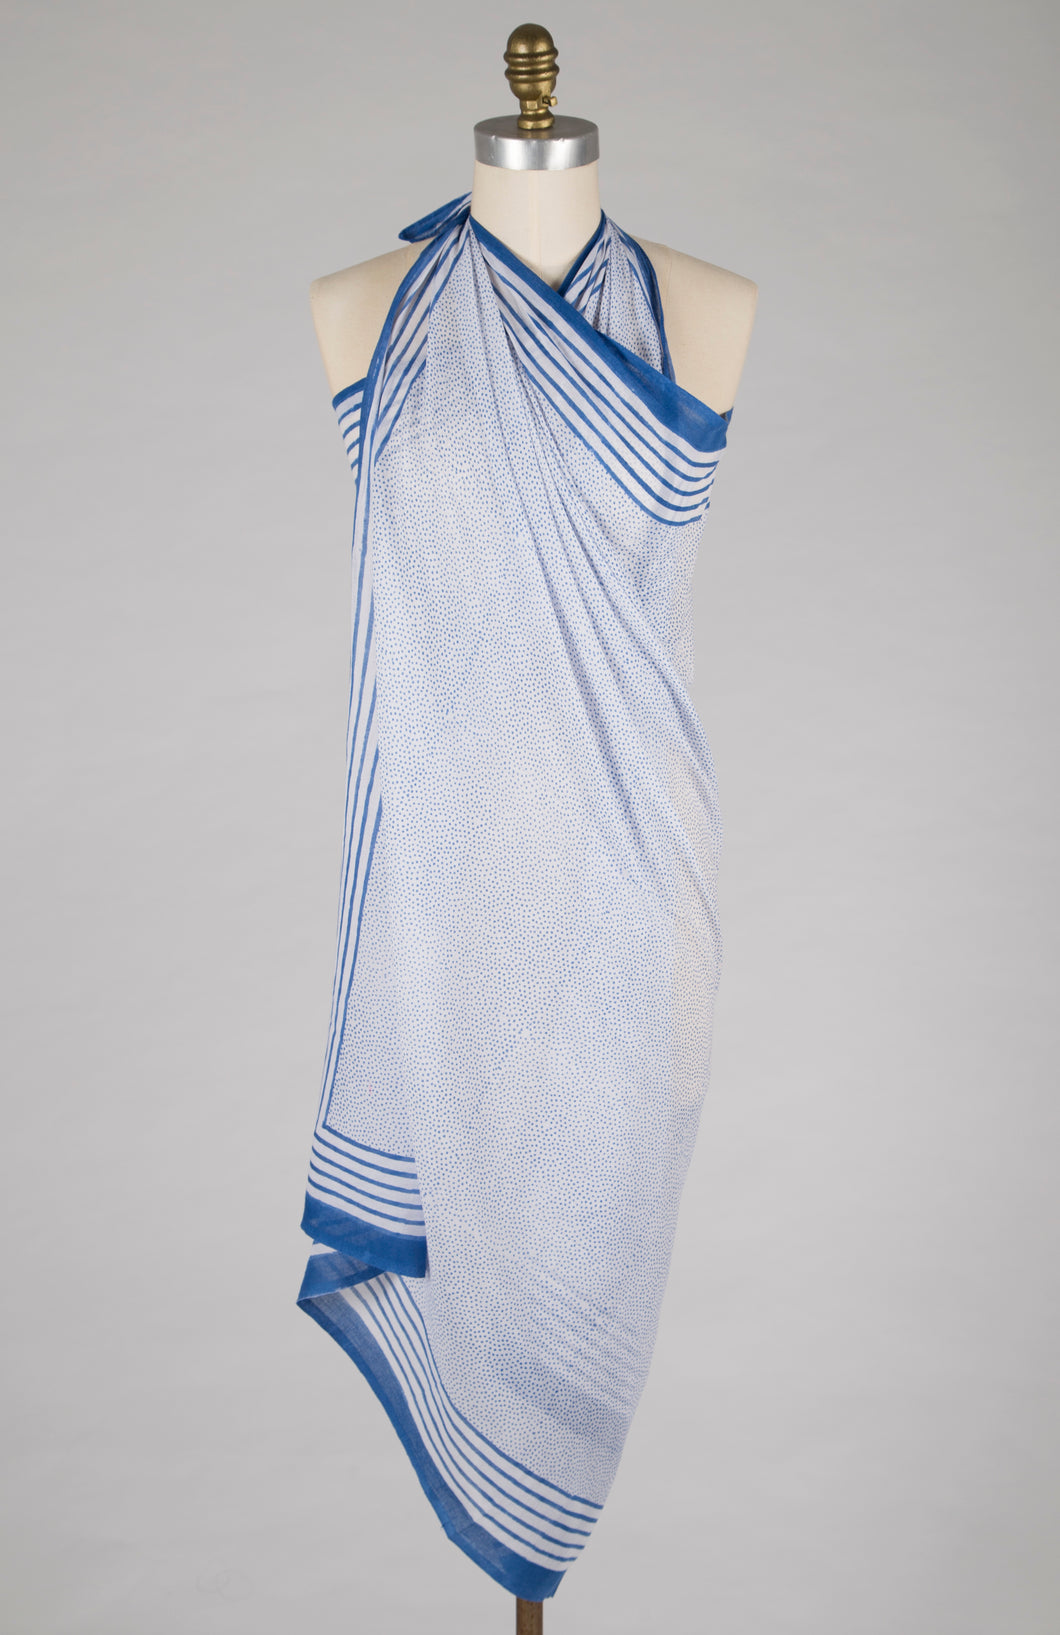 Sarong - Blue Dot - 100% Cotton Voile